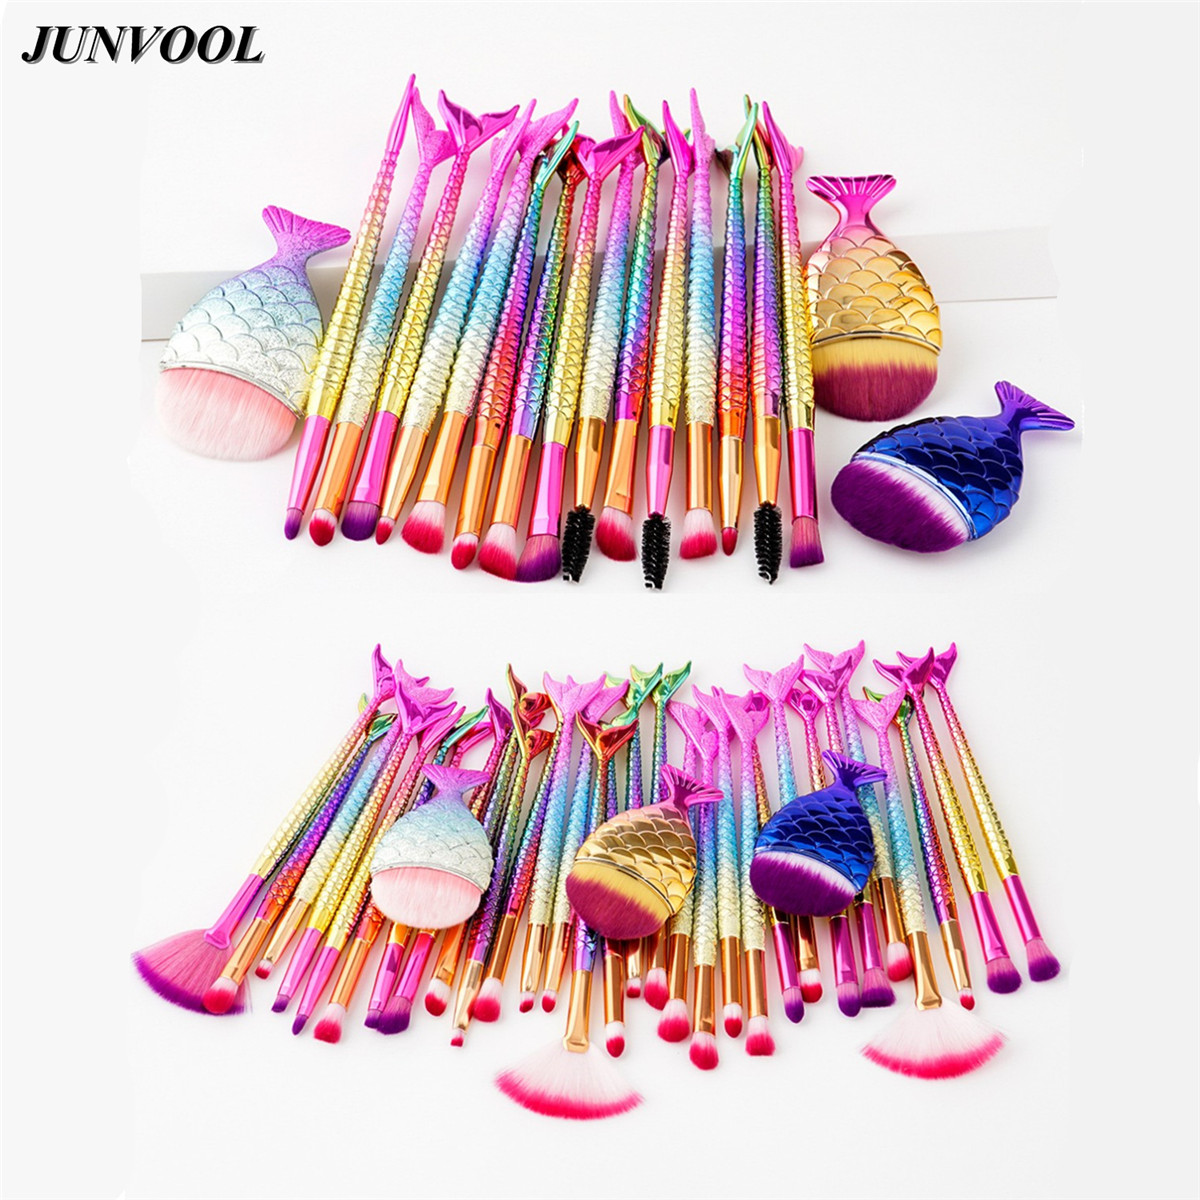 Eyes Mermaid Makeup Brushes Set Big Fish Tail Foundation Blending Brush Powder Eyeshadow Contour Concealer Cosmetic Make Up Tool focallure 10pcs makeup brushes set foundation blending powder eyeshadow contour blush brush beauty cosmetic make up tool kit